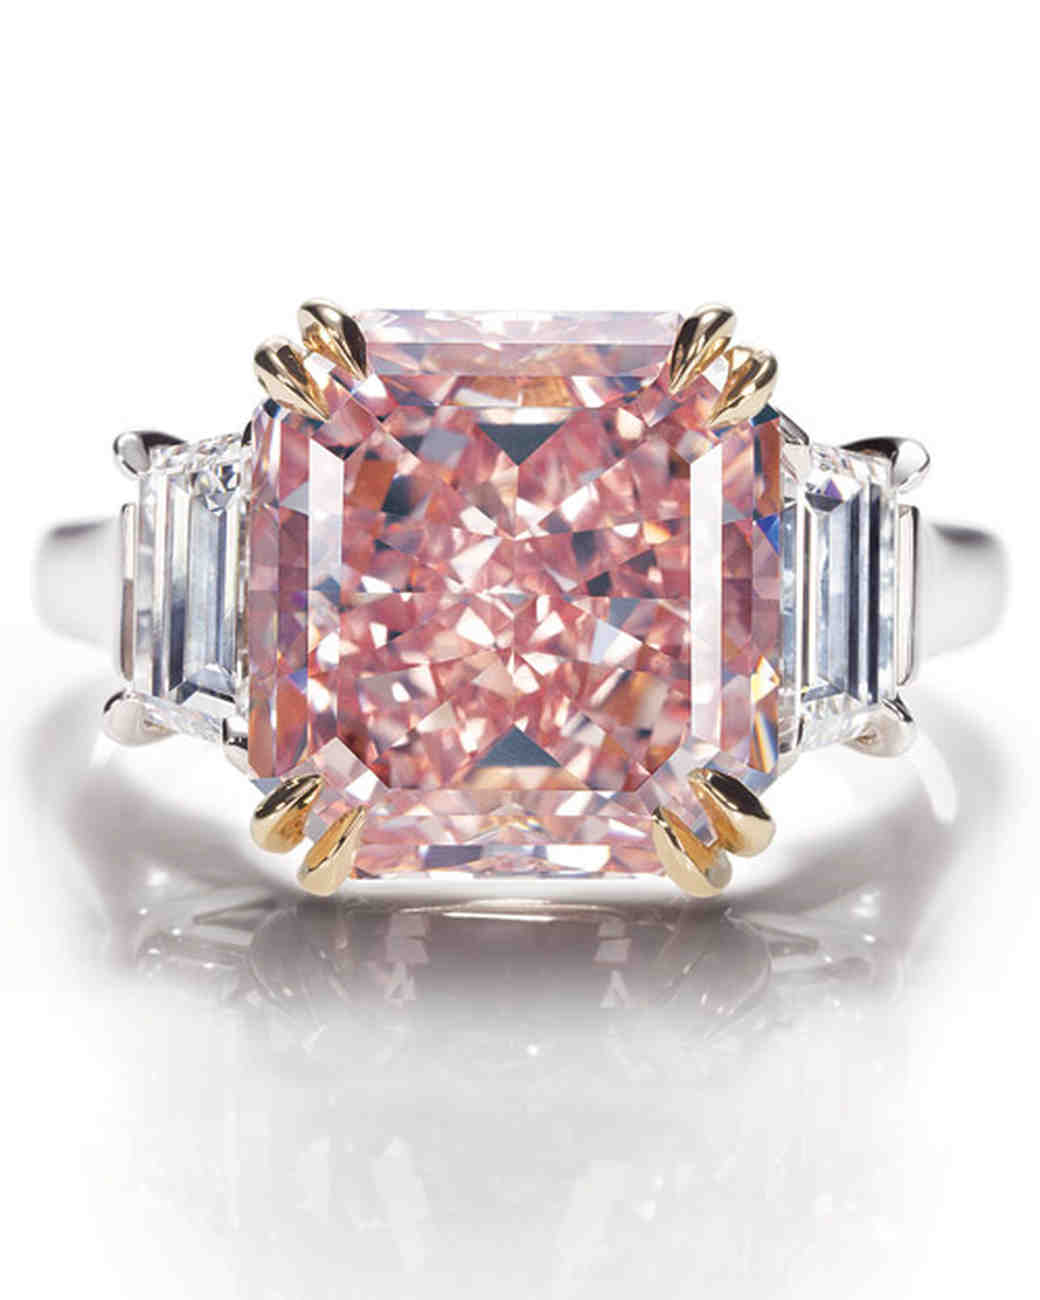 winston_extemely_rare_fancy_intense_pink_diamond_ring_1.jpg